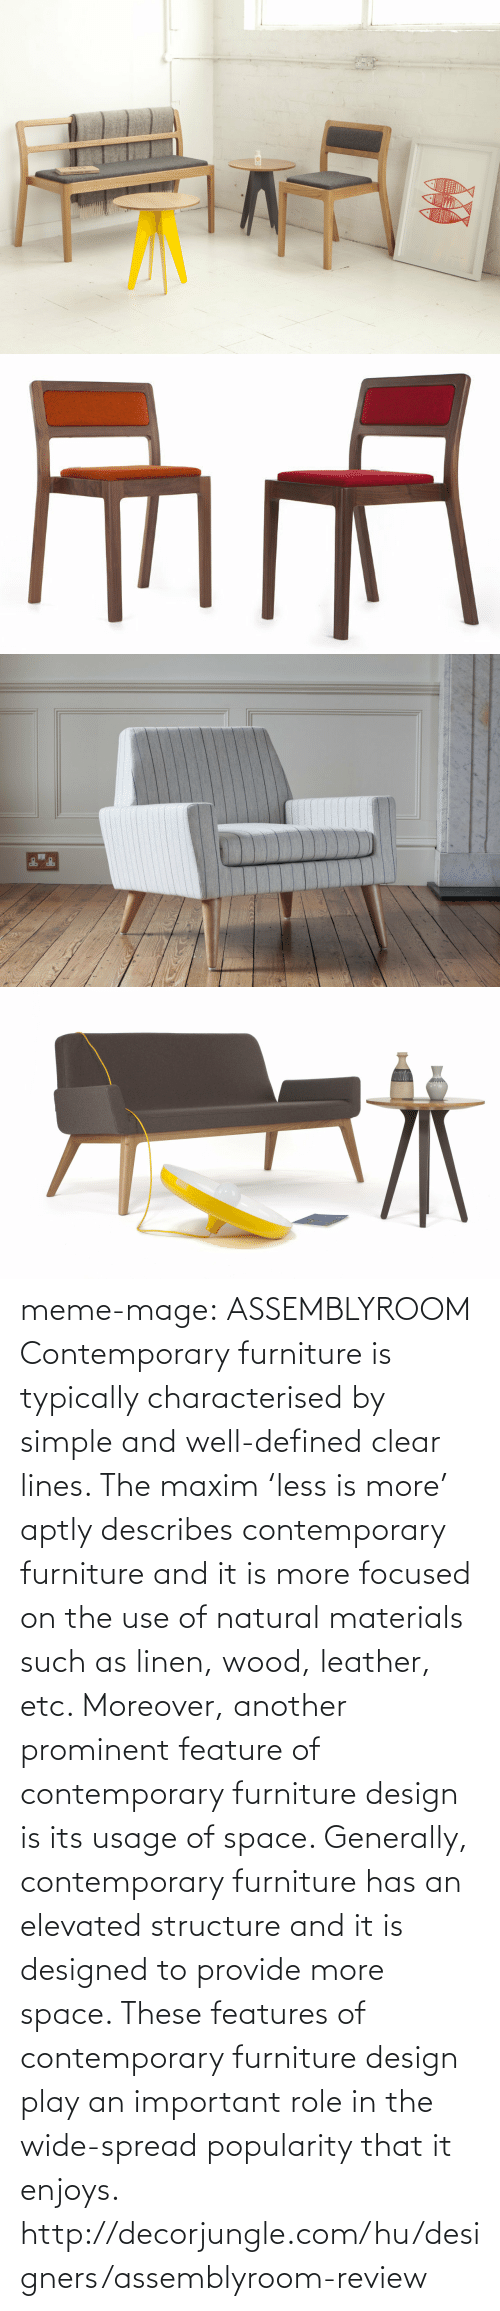 meme: meme-mage:    ASSEMBLYROOM Contemporary furniture is typically characterised by simple and well-defined clear lines. The maxim 'less is more' aptly describes contemporary furniture and it is more focused on the use of natural materials such as linen, wood, leather, etc. Moreover, another prominent feature of contemporary furniture design is its usage of space. Generally, contemporary furniture has an elevated structure and it is designed to provide more space. These features of contemporary furniture design play an important role in the wide-spread popularity that it enjoys. http://decorjungle.com/hu/designers/assemblyroom-review